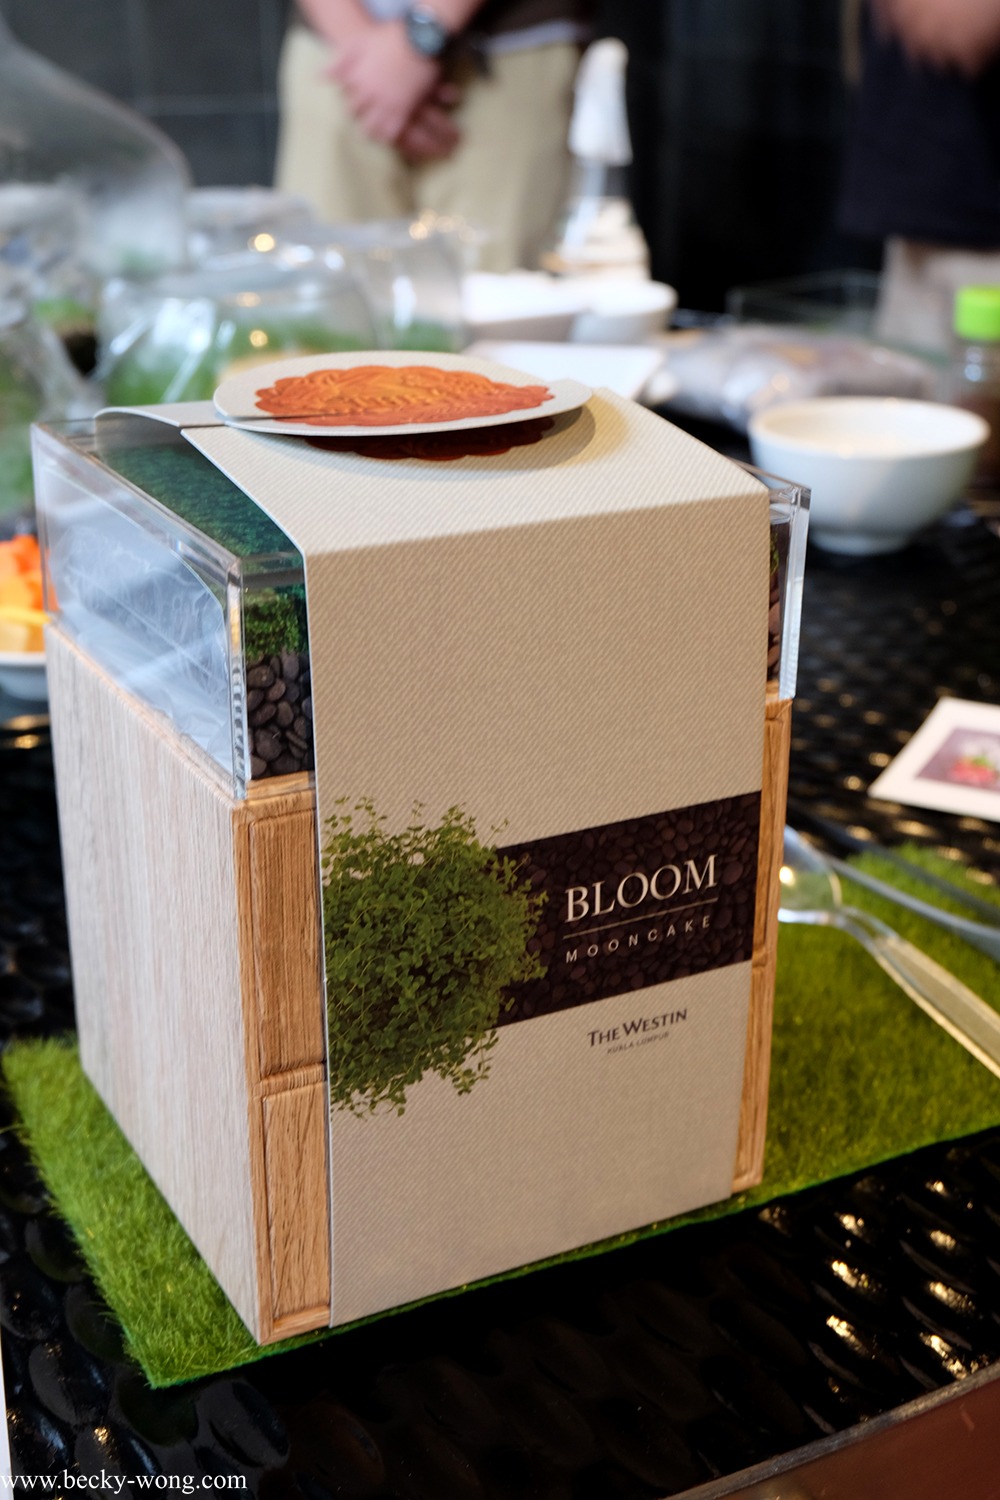 Bloom by the westin kuala lumpur mooncake gift box with diy apart from only having 3000 pieces of these boxes the gift box comes with a pack of diy planting kit where you can plant and decorate your own terrarium solutioingenieria Image collections